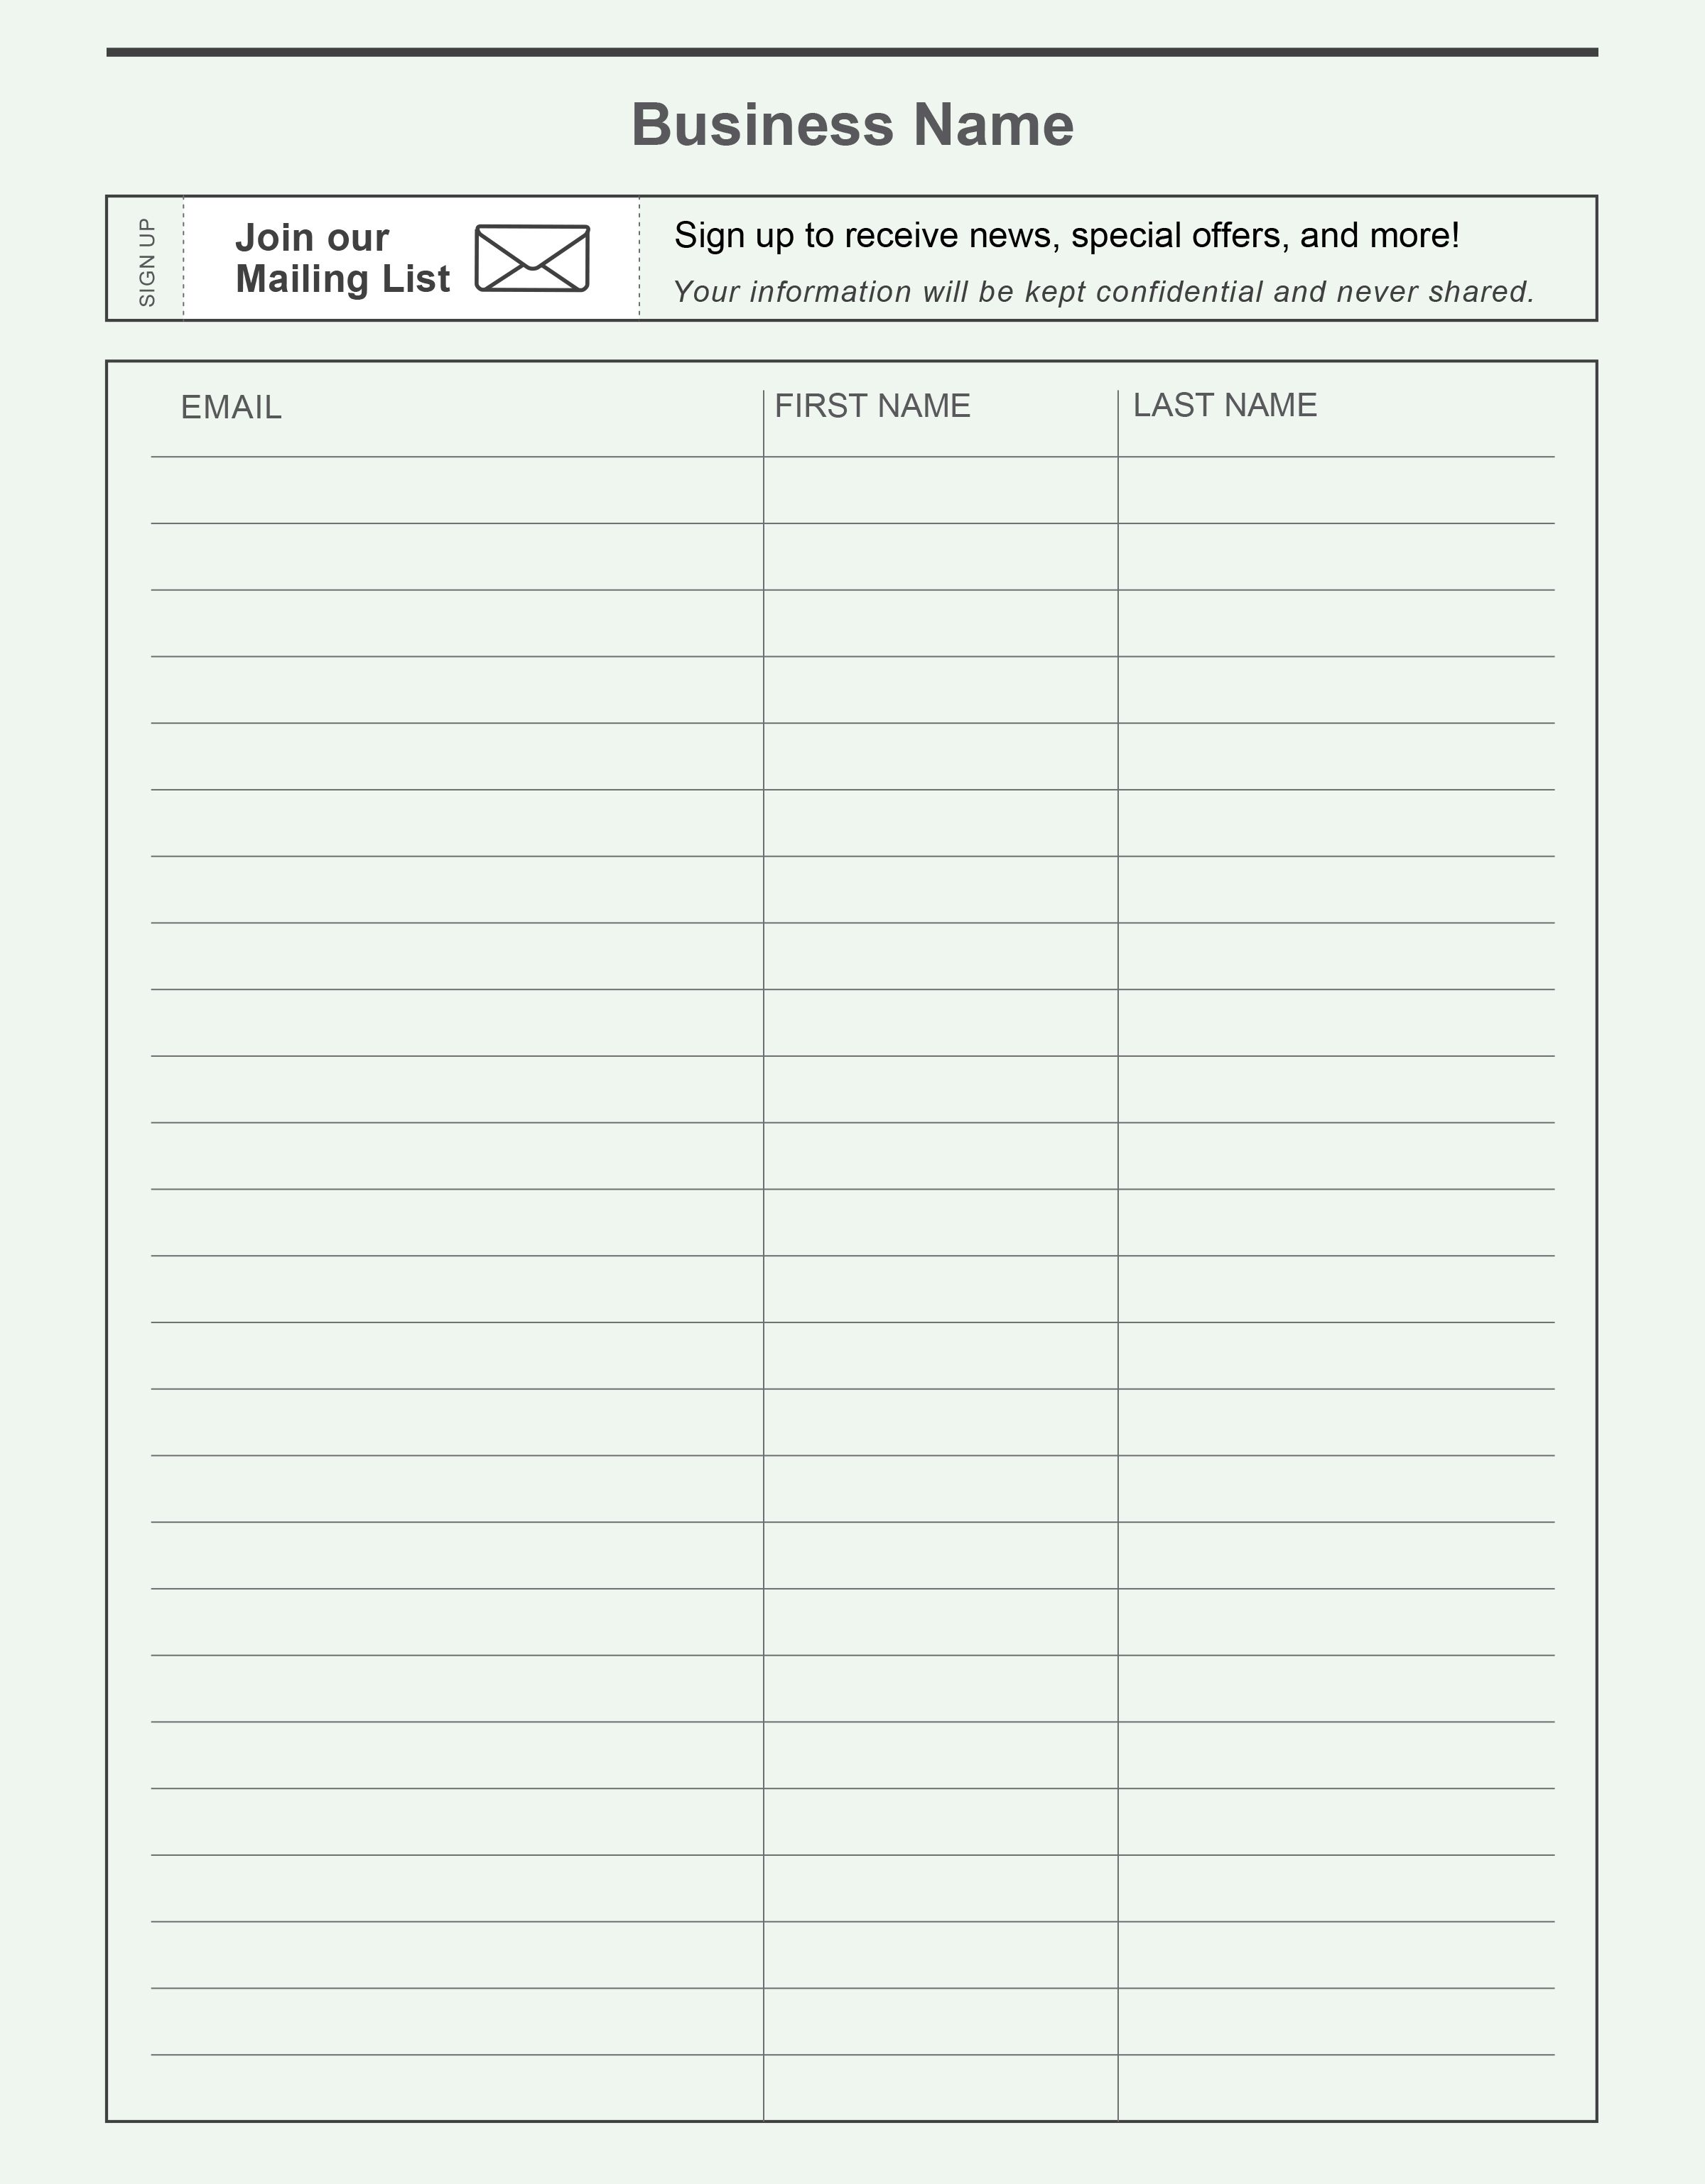 18/04/2020· email sign up sheet template. Dentrodabiblia Email Sign Up Sheet